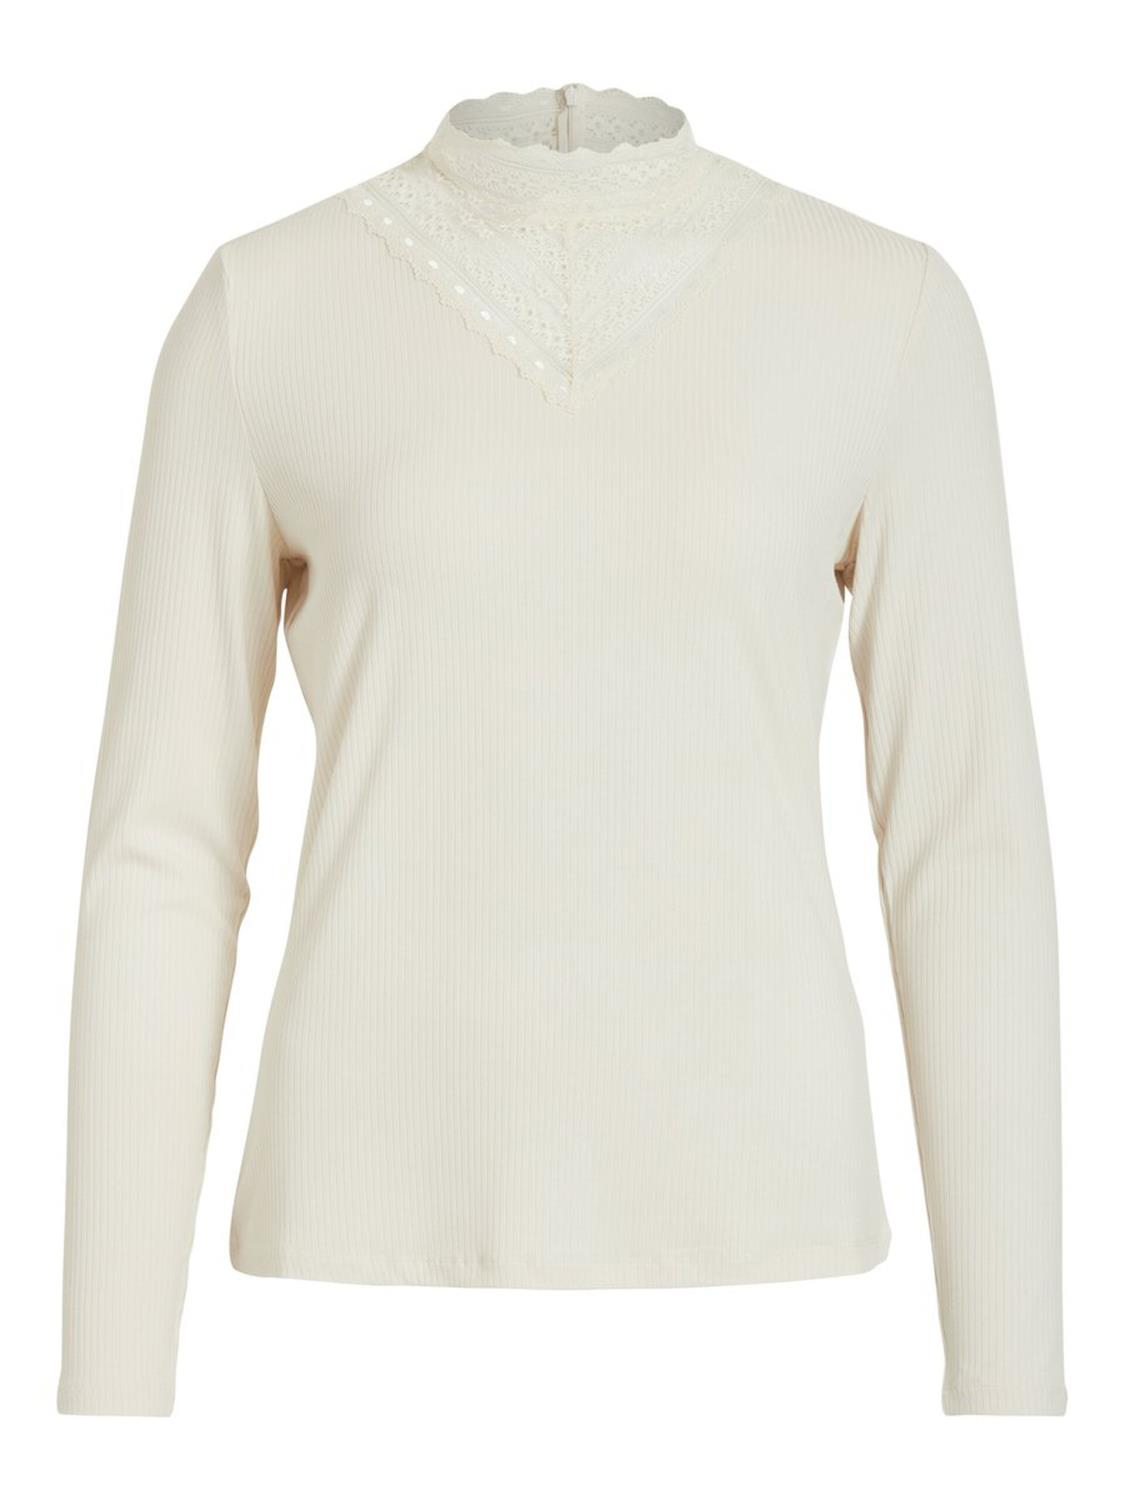 Vila Solitta rib lace top, beige